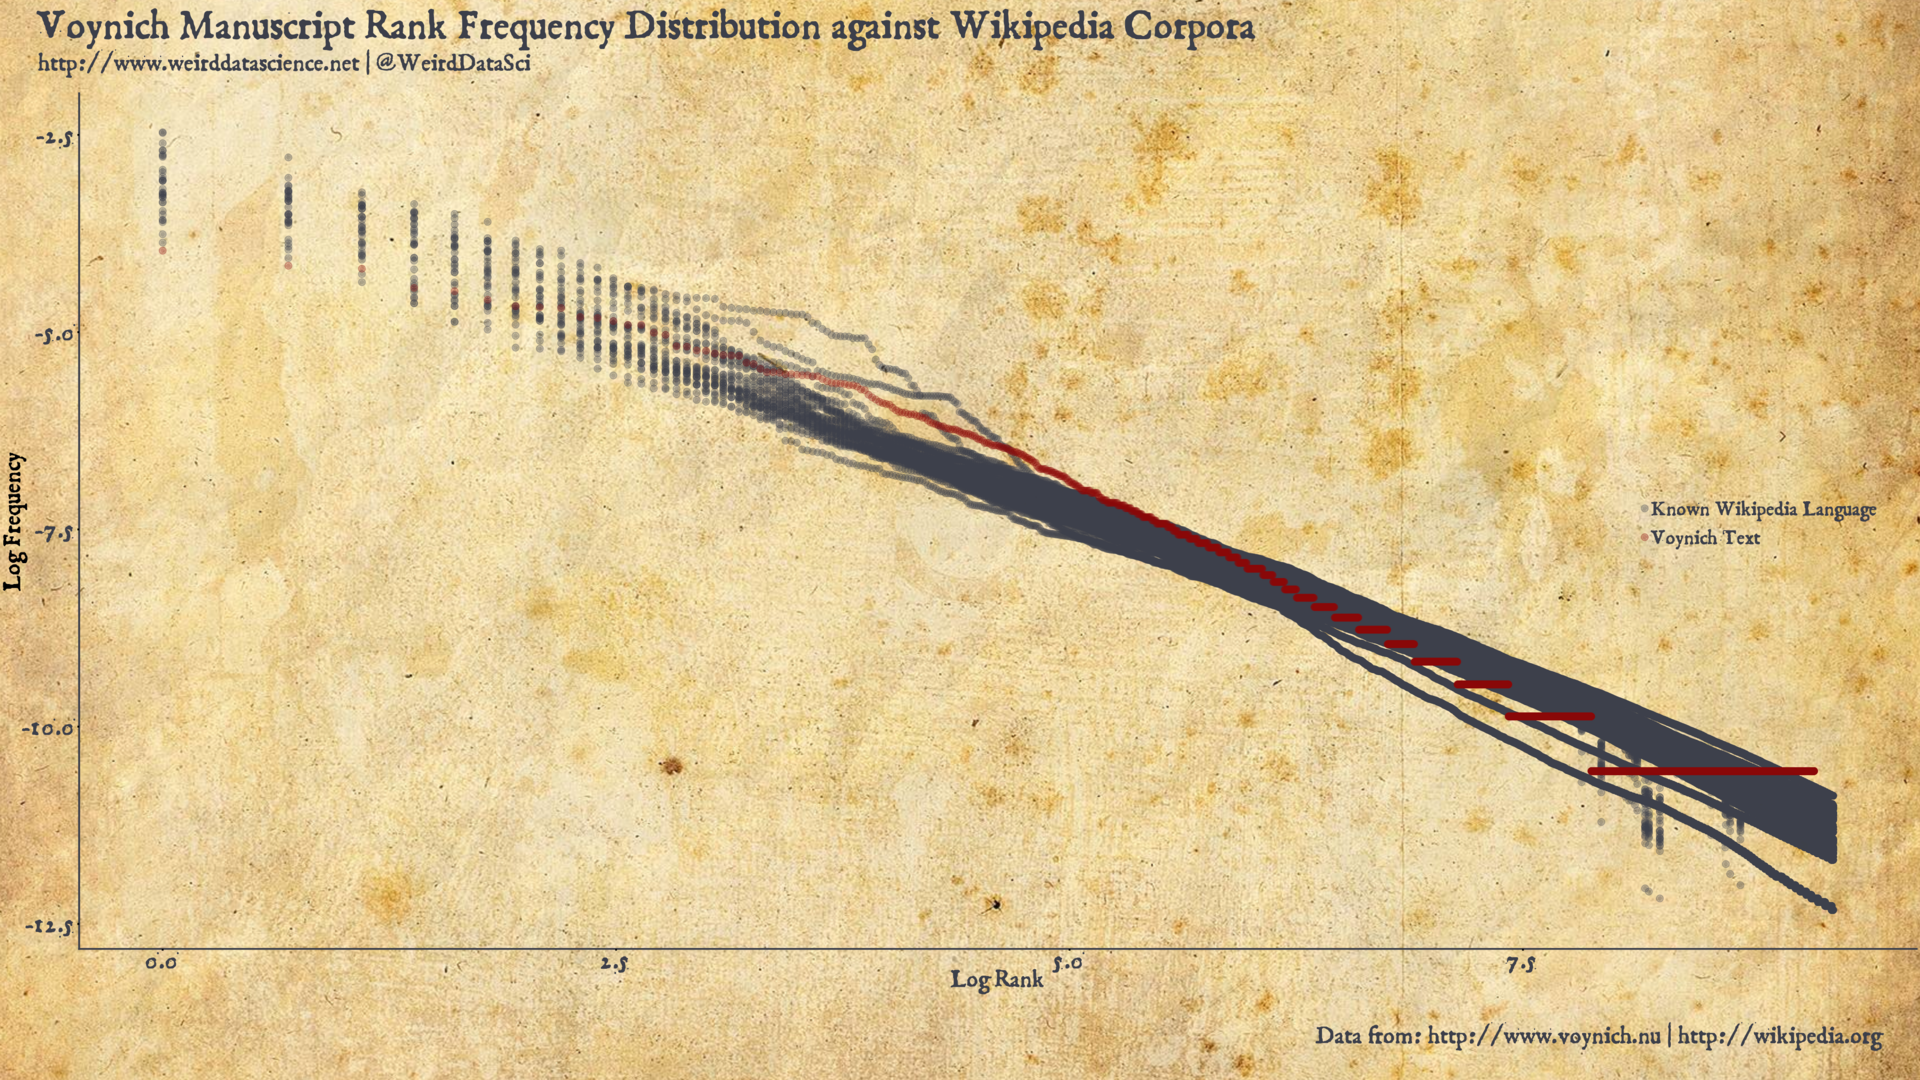 Voynich Manuscript Rank Frequency Distribution against Wikipedia Corpora